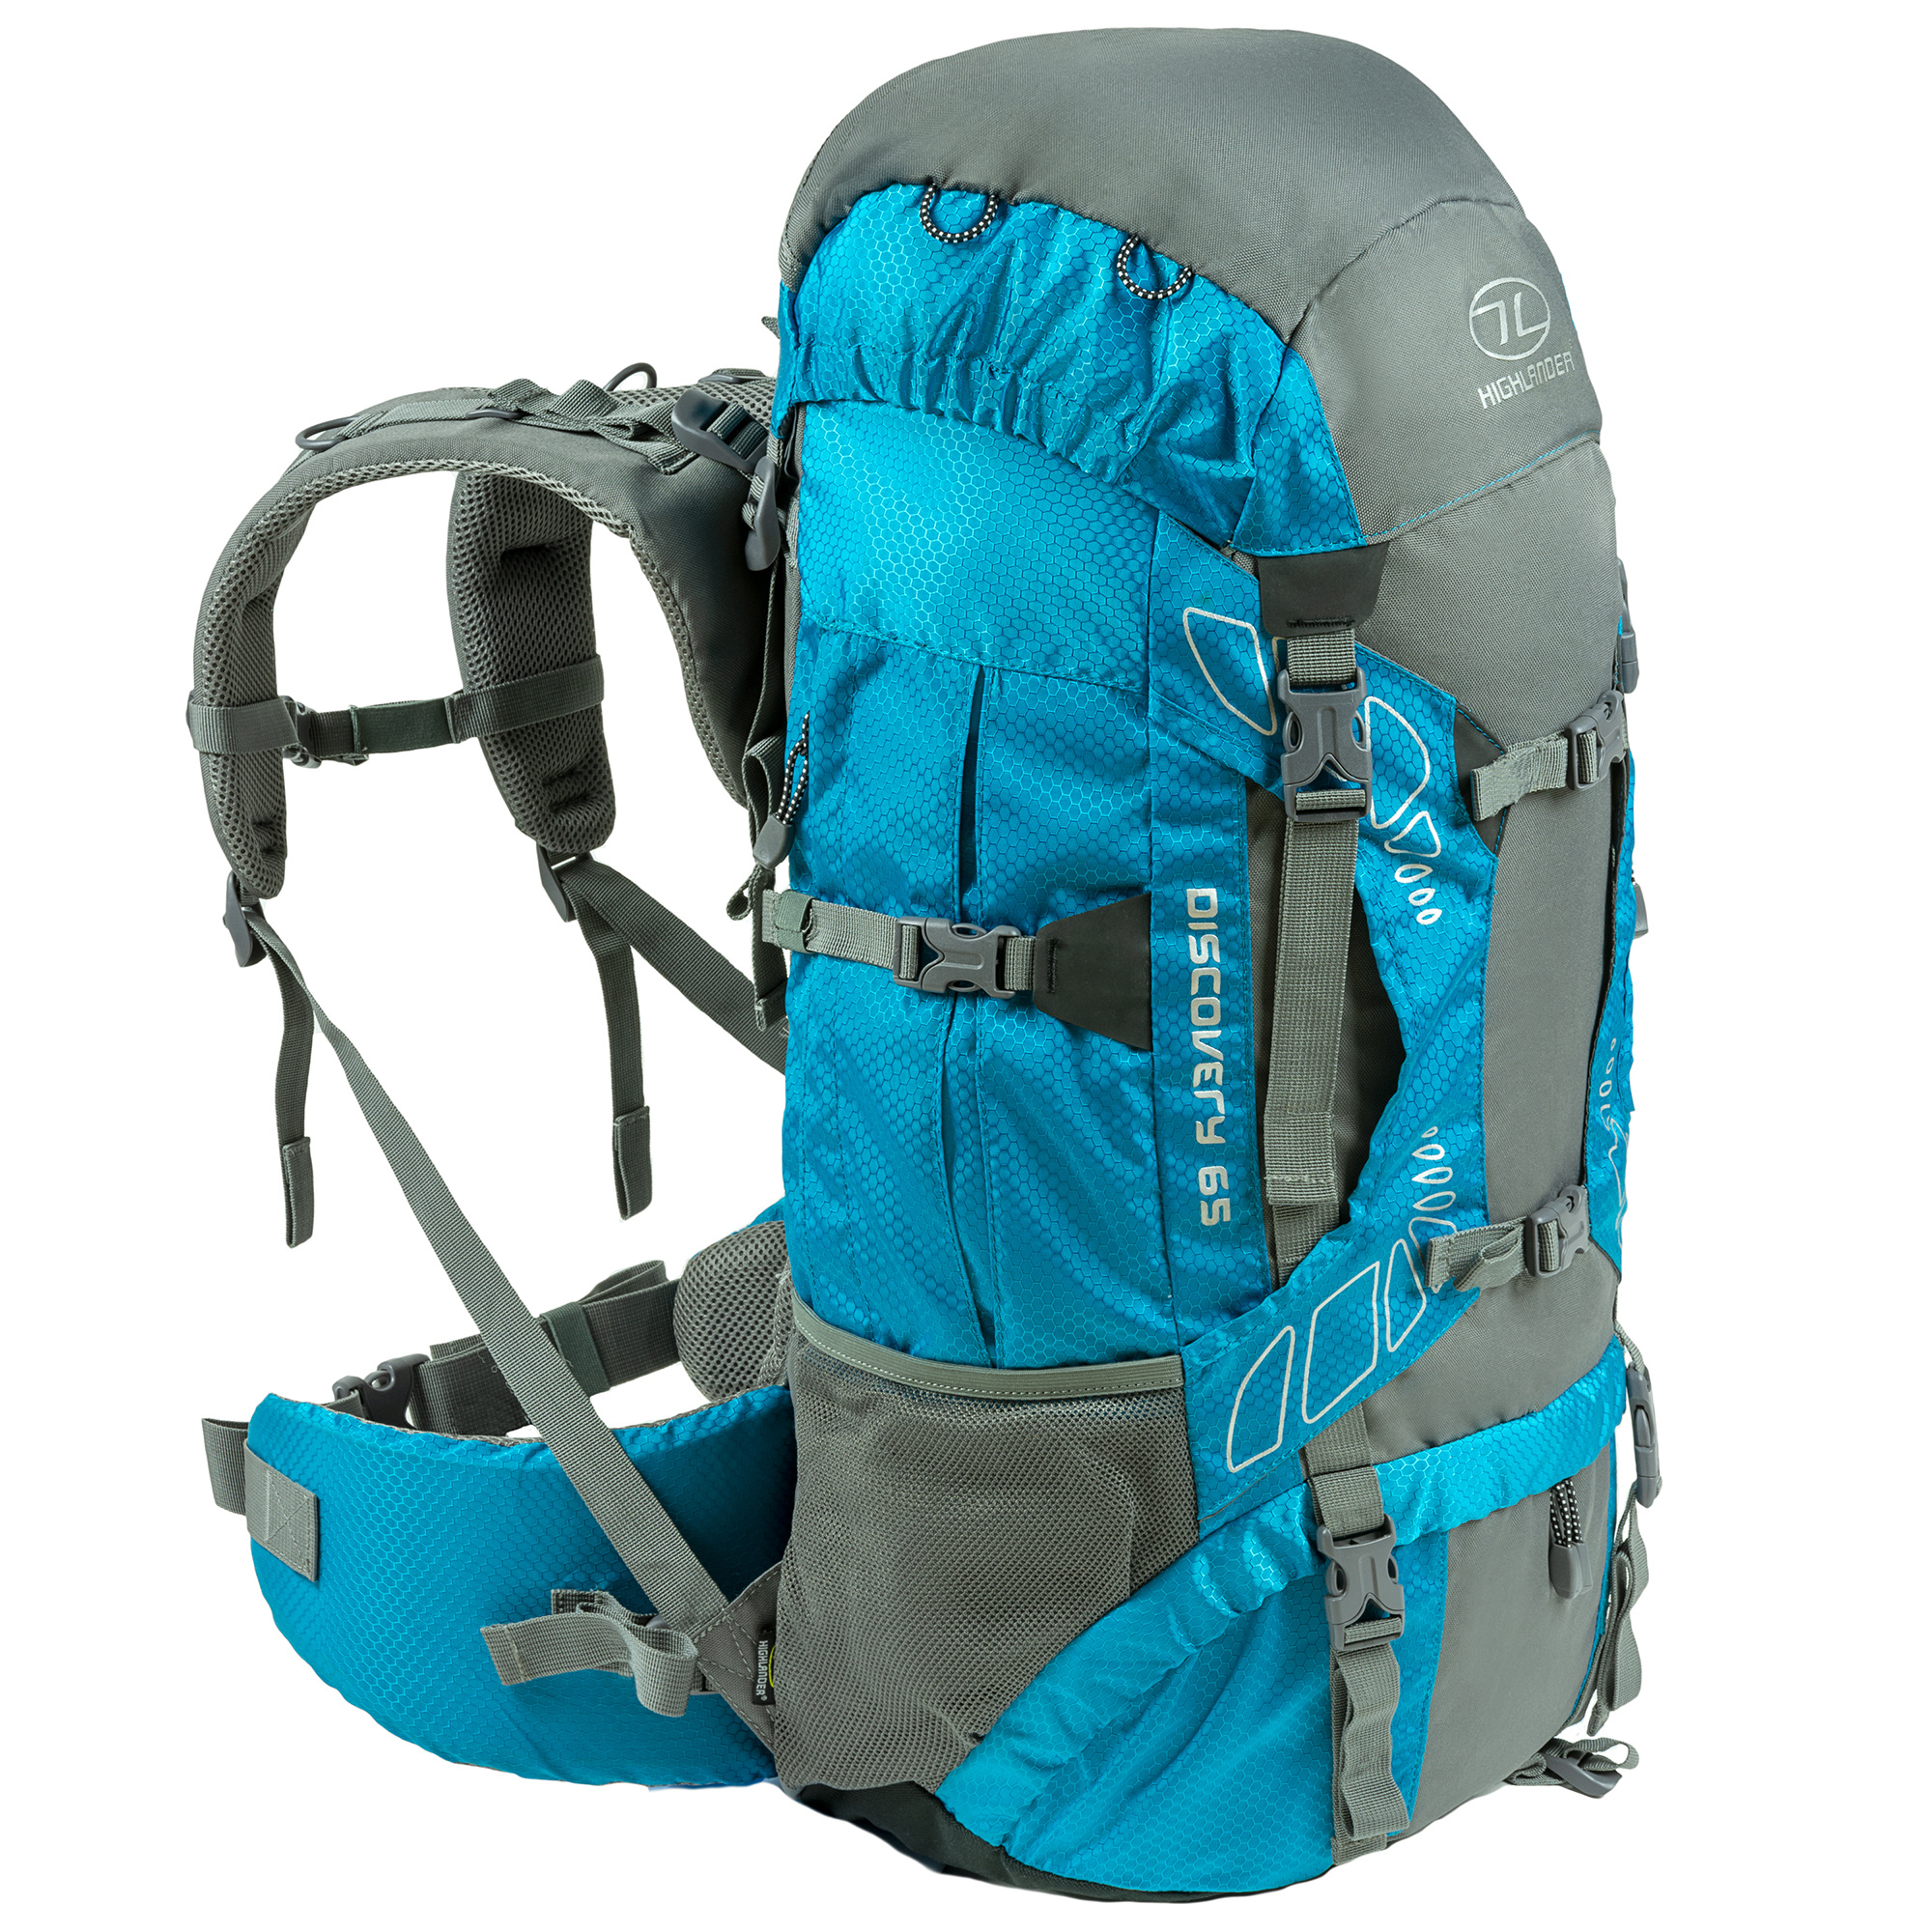 40c7ab0410b Highlander Discovery 65l backpack - teal blauw | Backpackspullen.nl